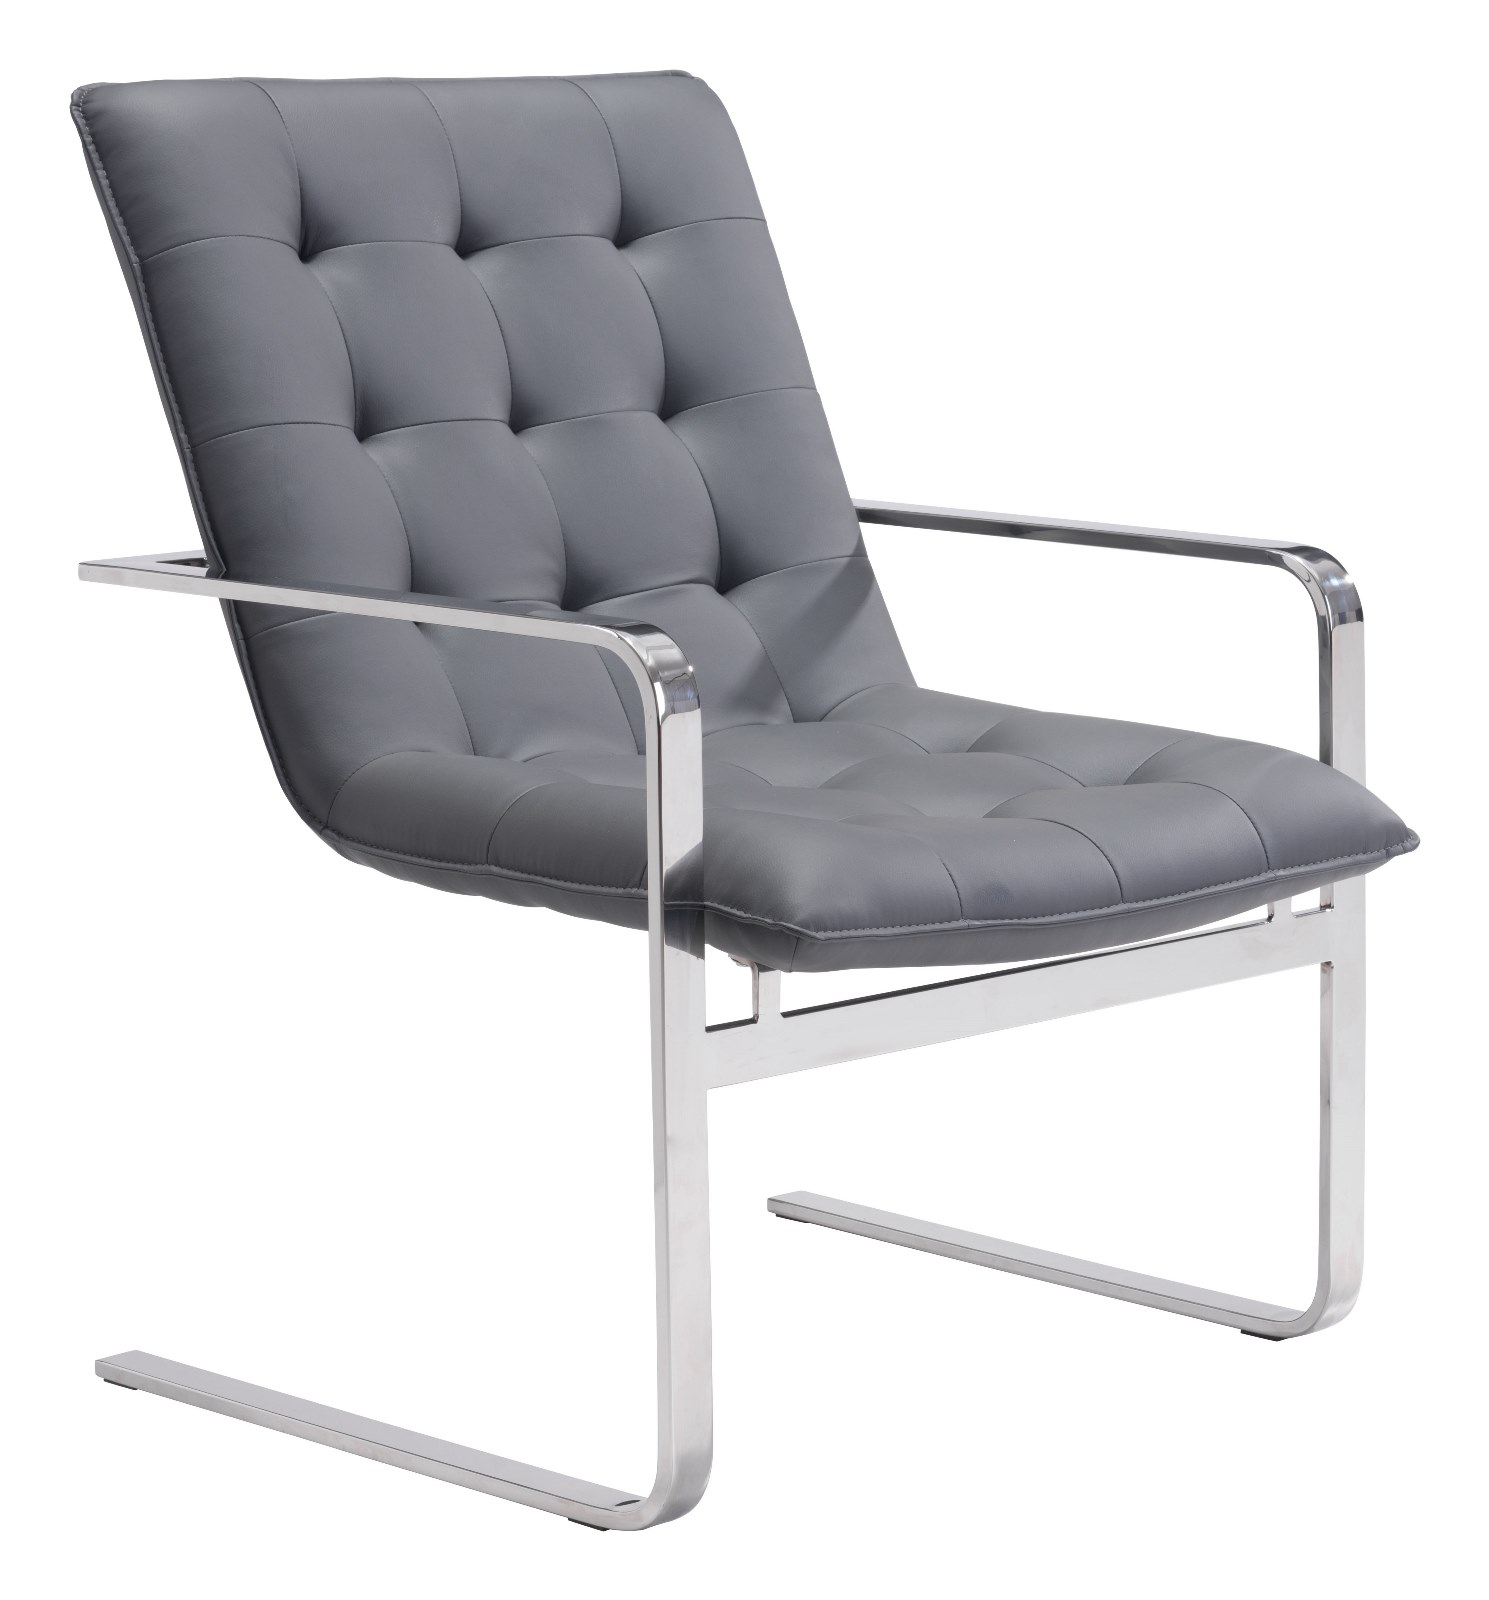 Modern Contemporary Occasional Chair, Gray, Faux Leather